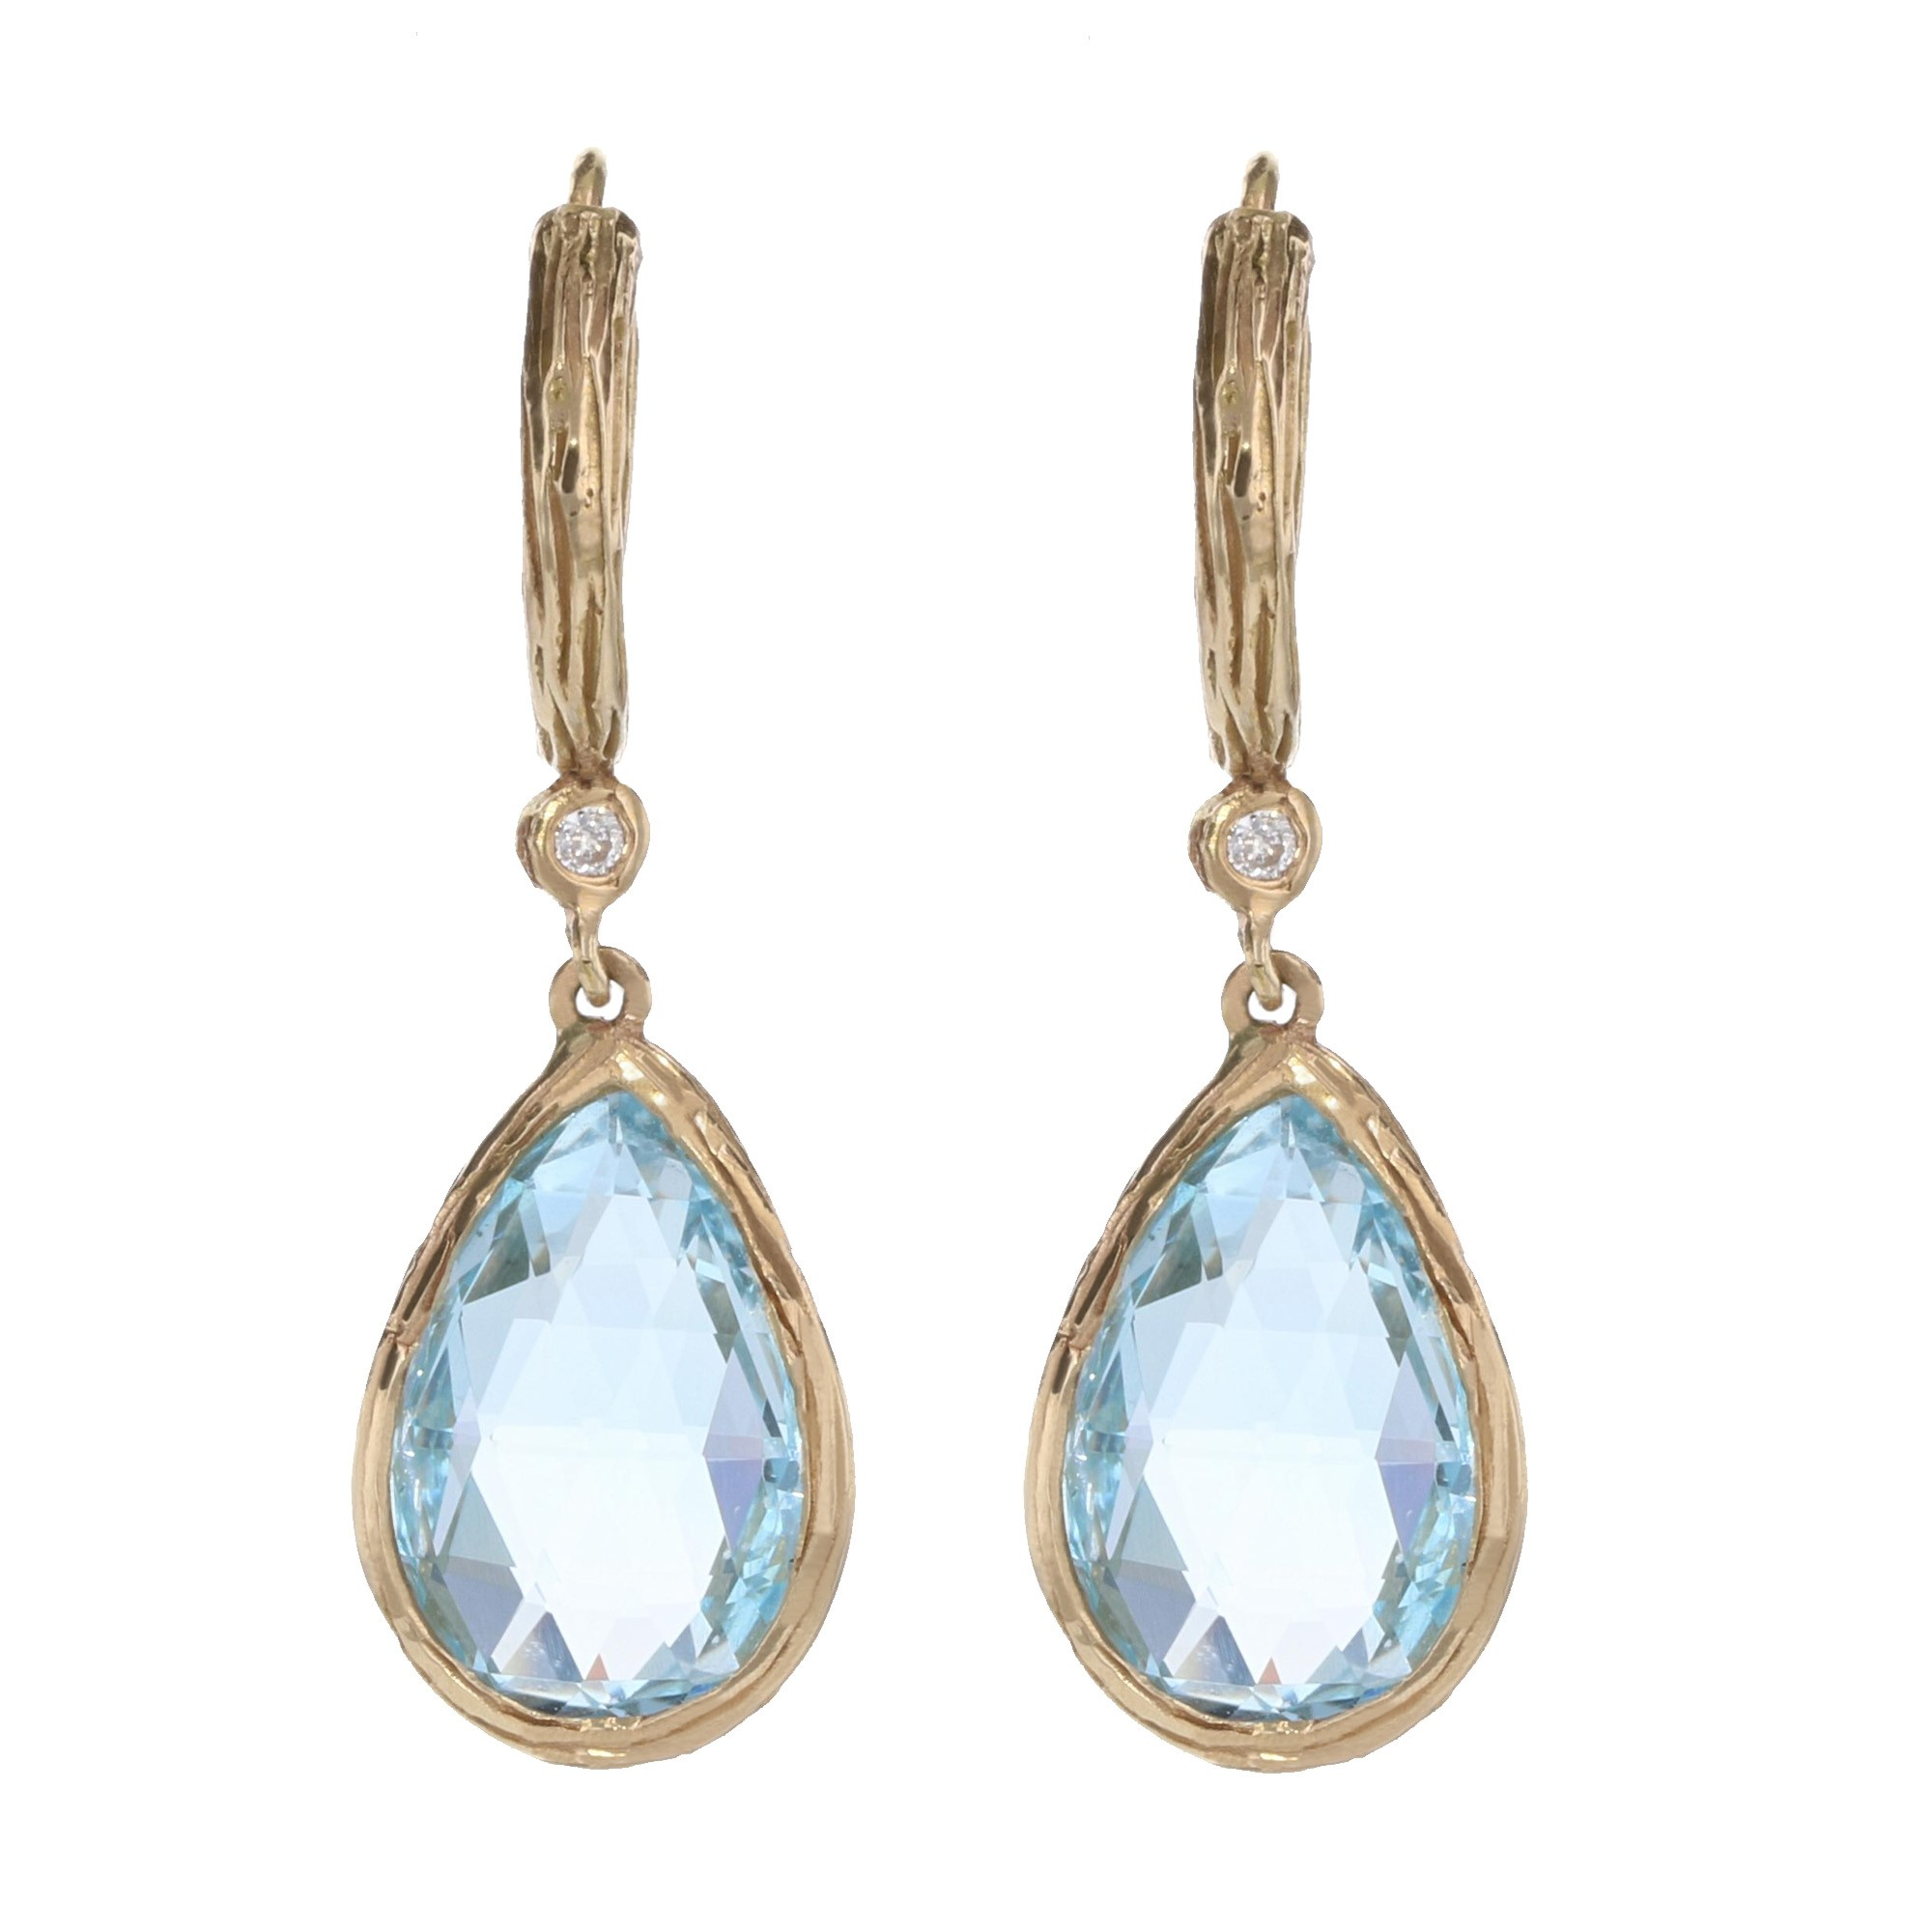 Details About Teardrop Blue Topaz And Diamond Earrings In 14kt Yellow Gold